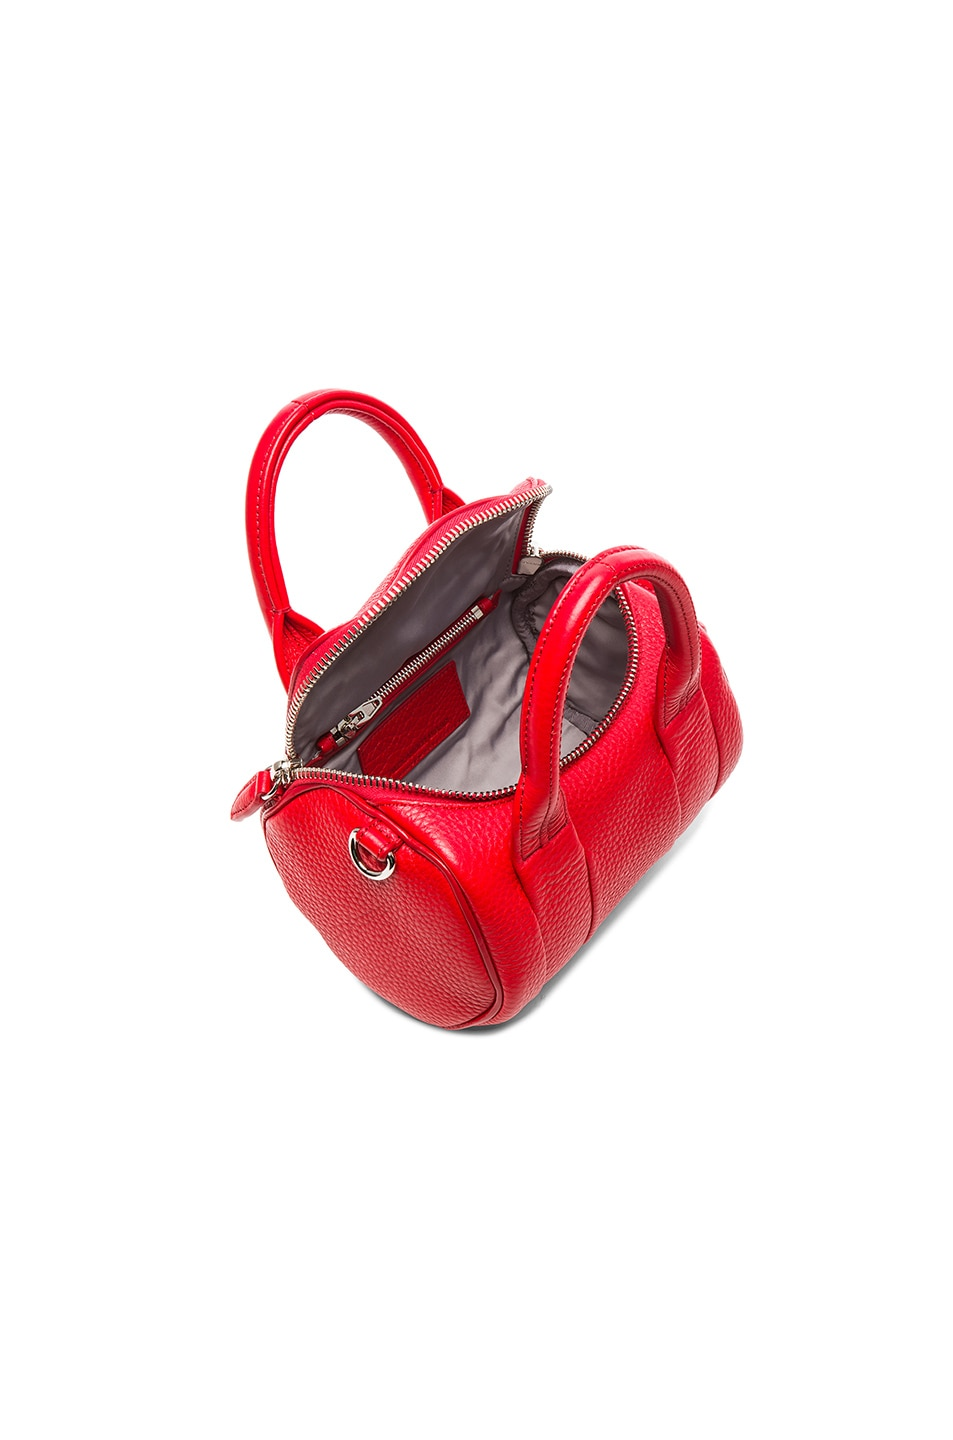 Image 5 of Alexander Wang Mini Rockie Bag with Silver Hardware in Cult